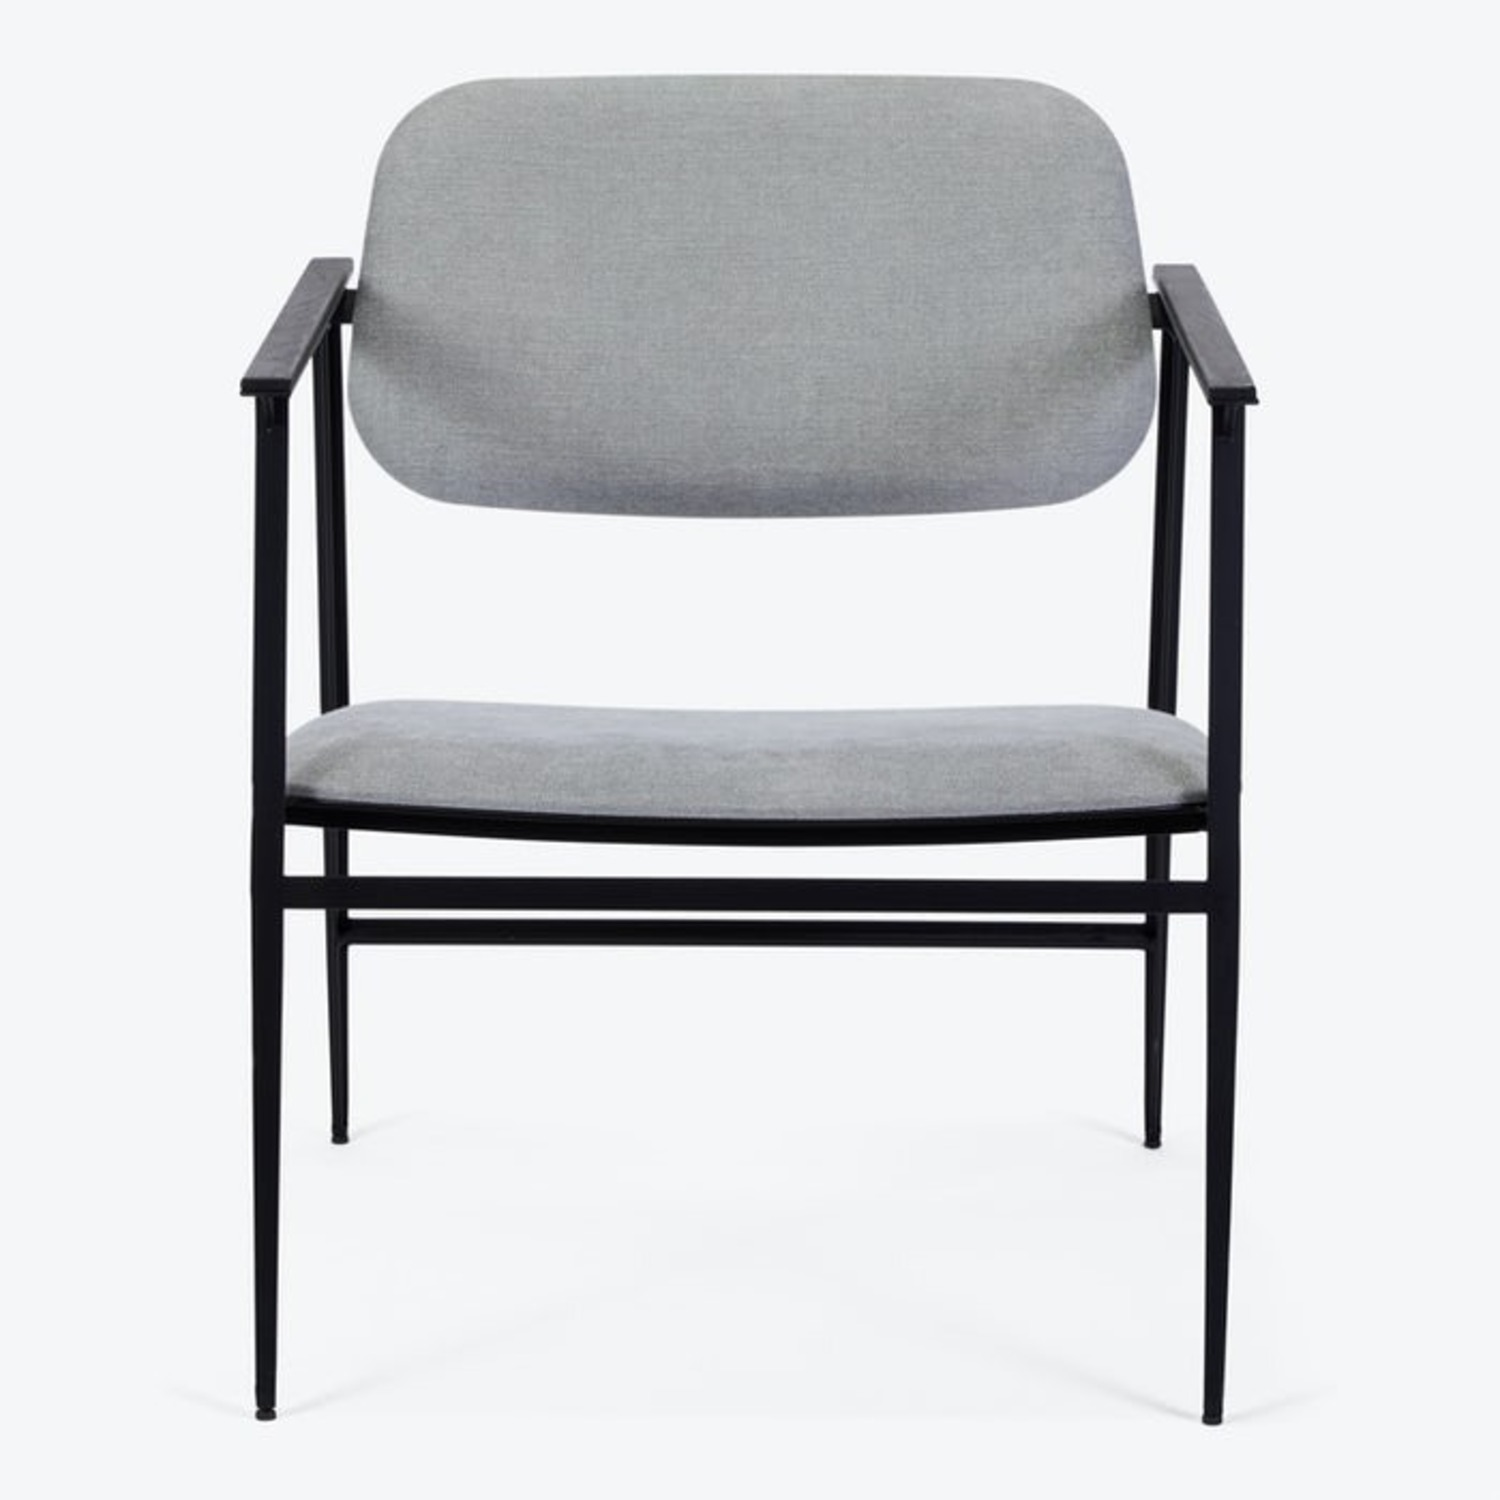 ABC Carpet and Home Modern Accent Chair - image-1